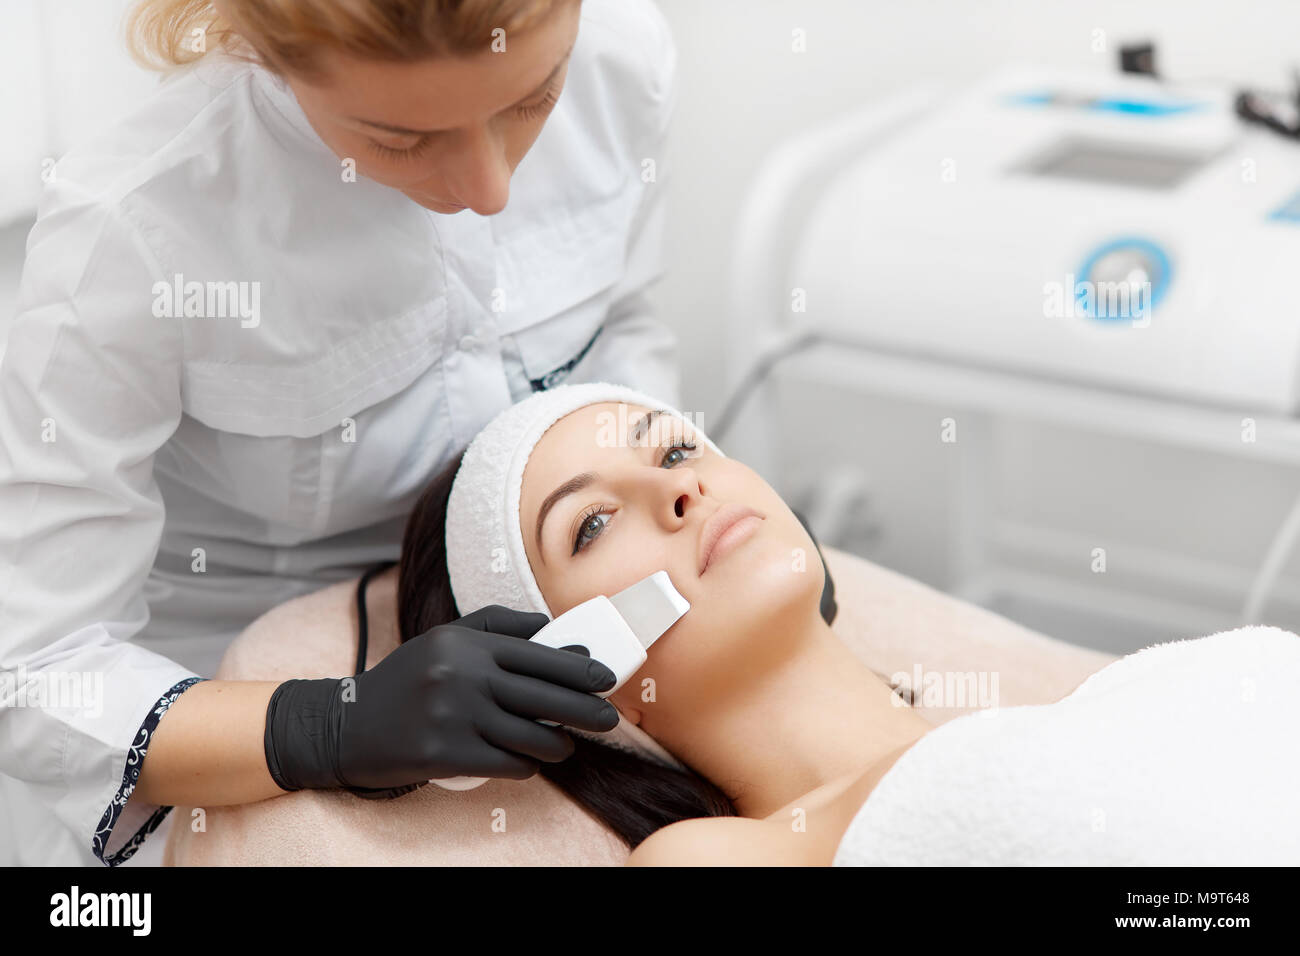 Beauty salon procedures of ultrasonic cleaning of face. - Stock Image